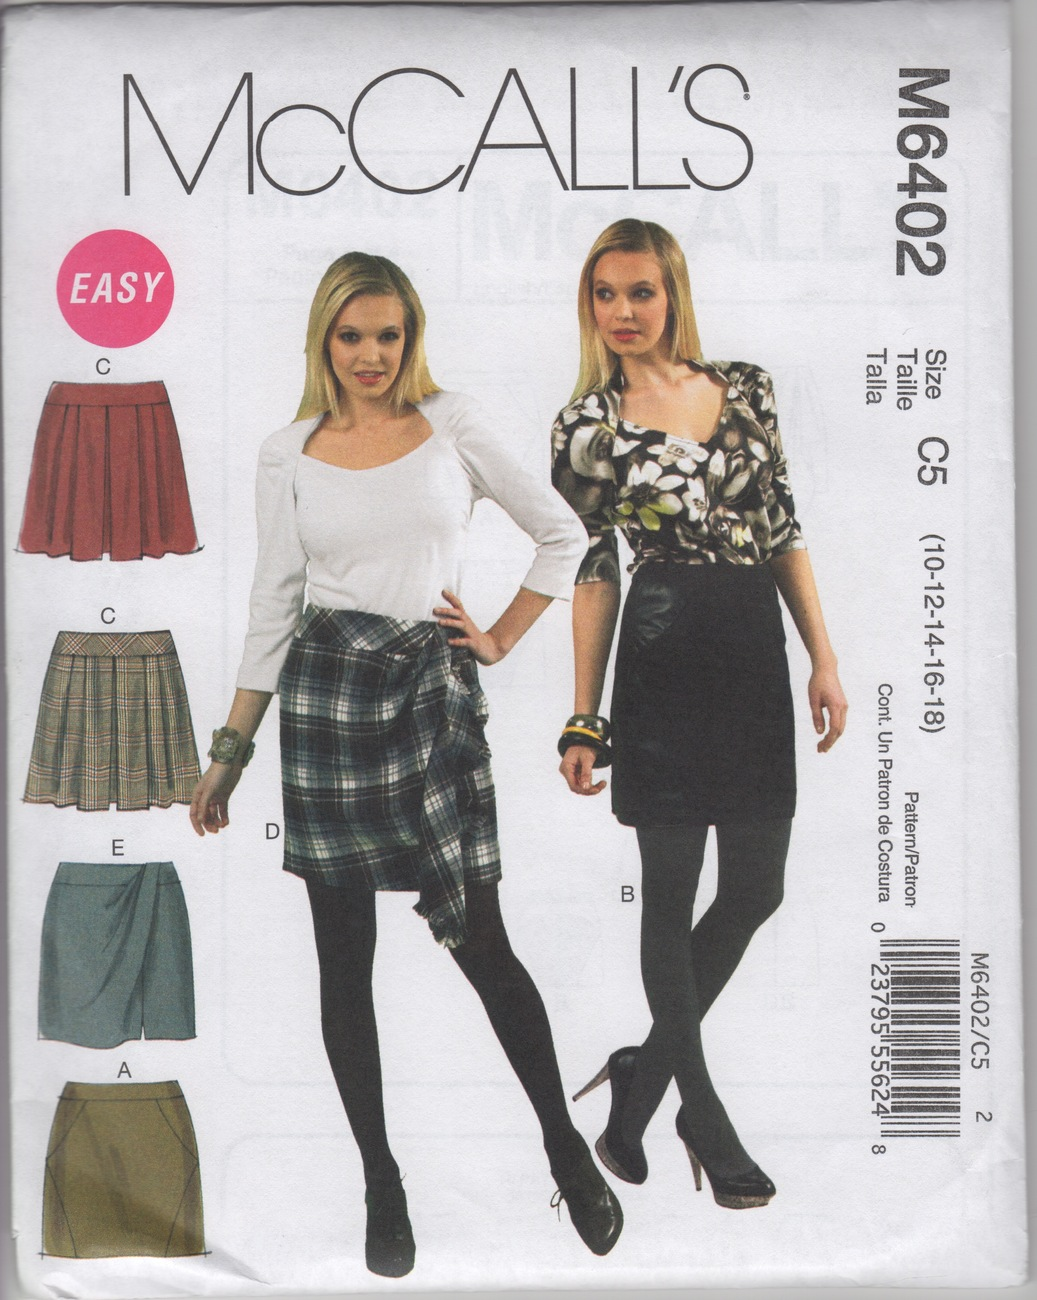 McCall's 6402 Misses' Skirts Sewing Pattern - Sizes: 10-18